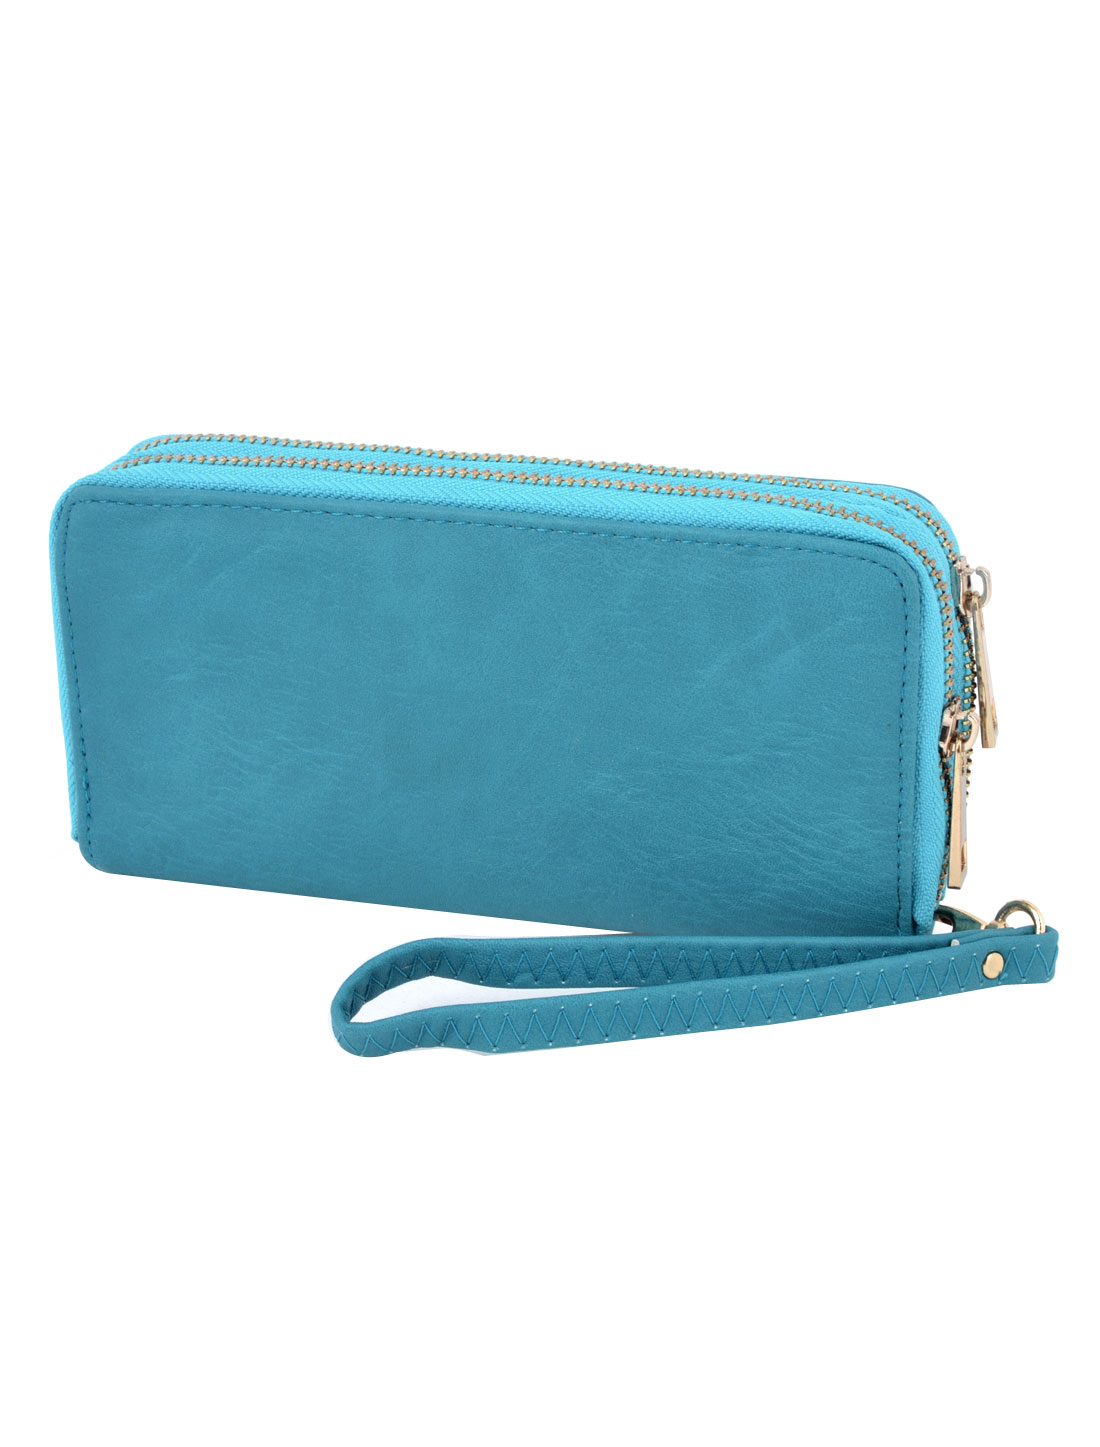 Women Zipper Closure 6 Compartment Faux Leather Phone ID Card Organizer Wallets Case Teal